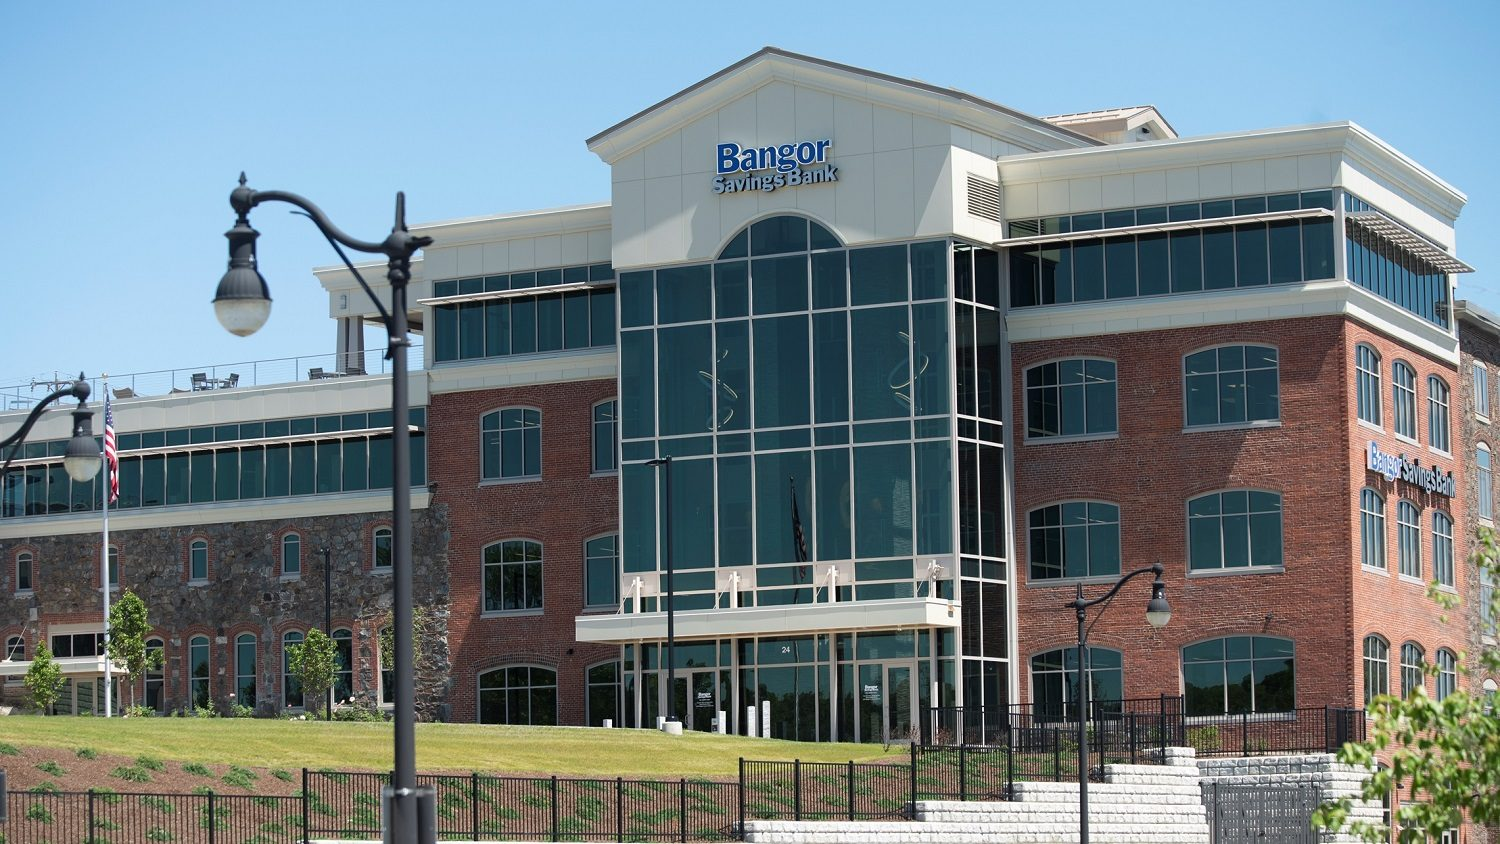 Bangor Savings Bank exterior